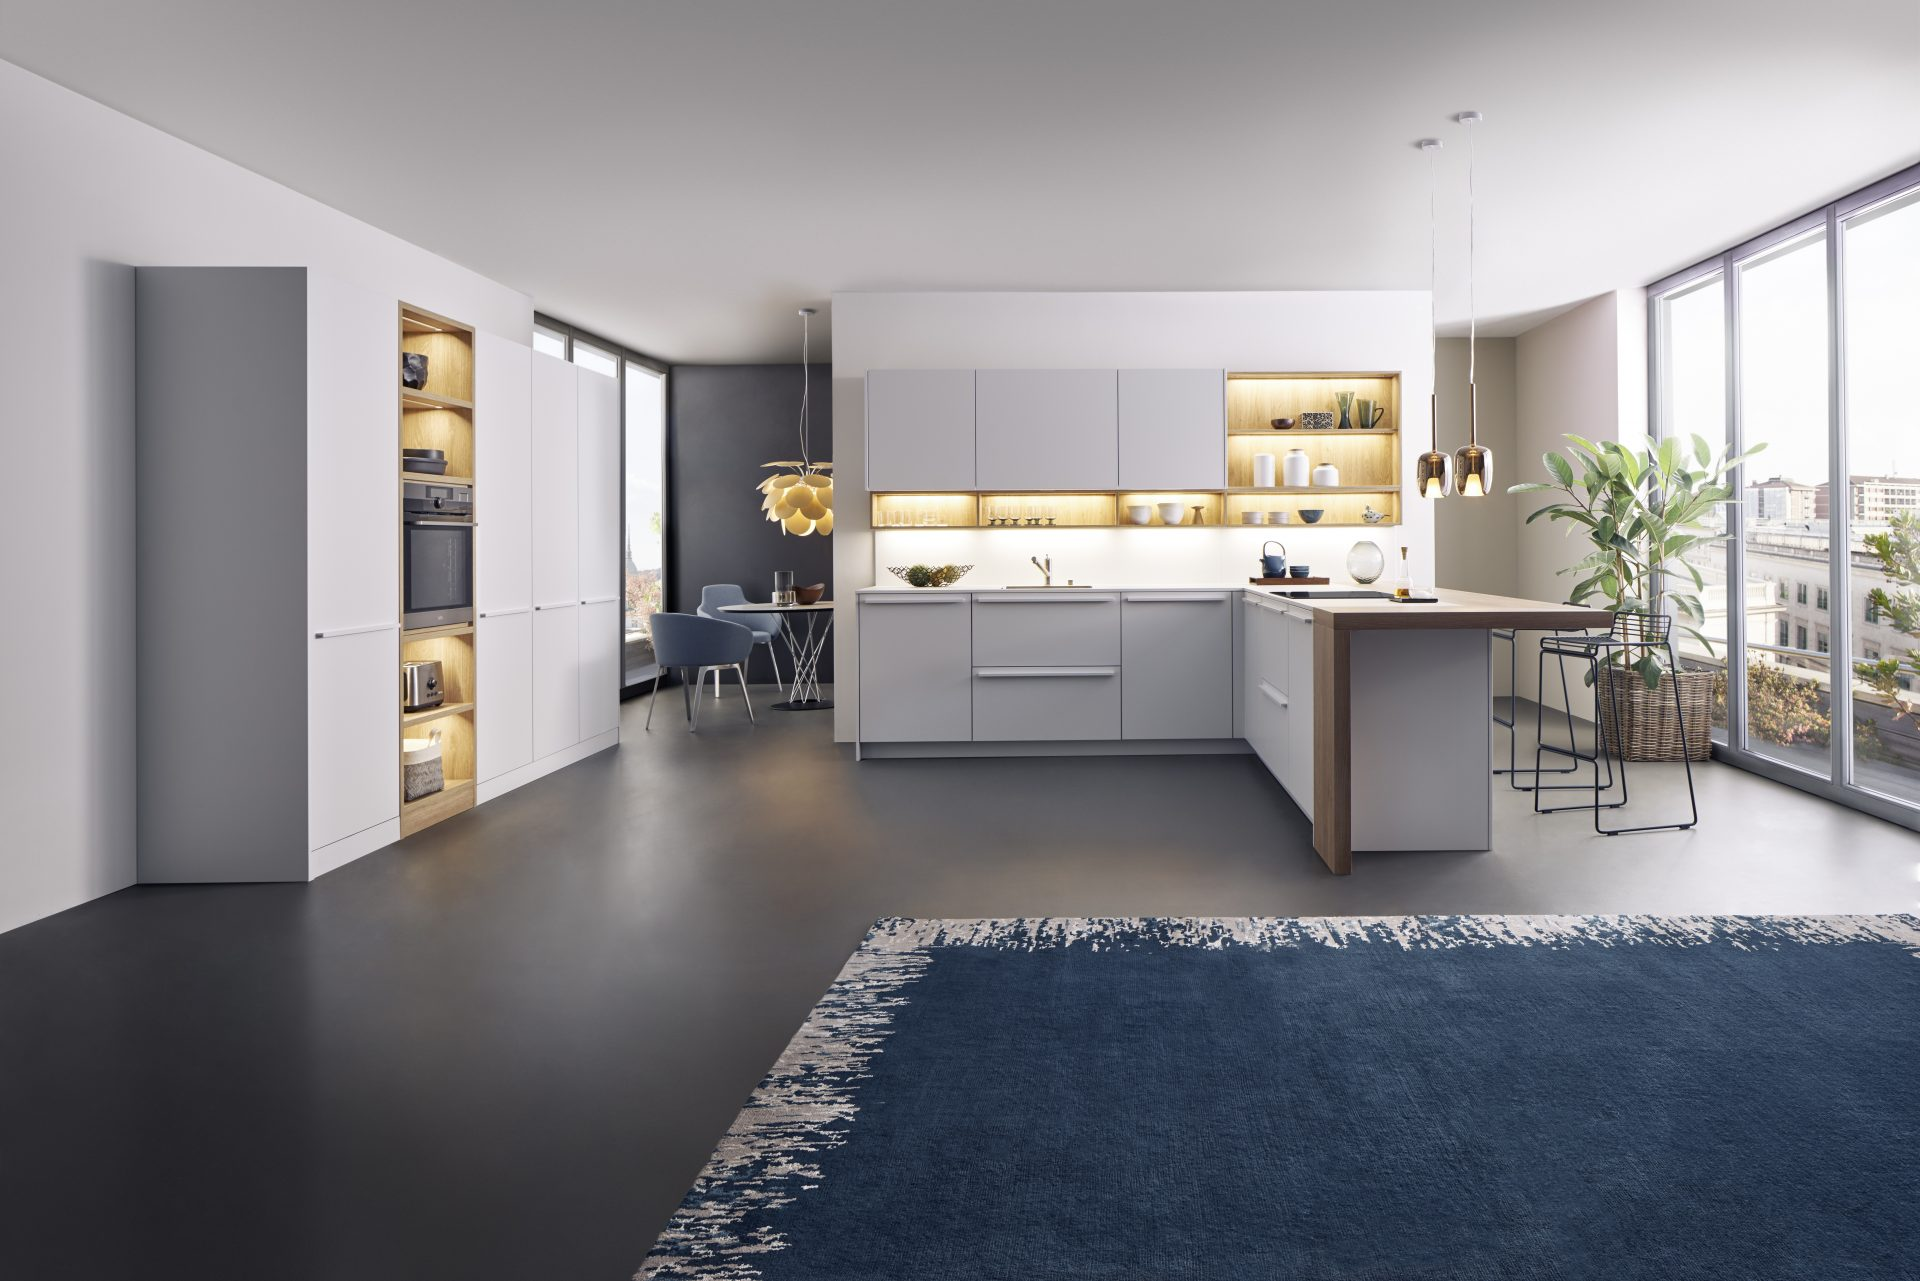 This kitchen by German supplier Leicht features two of their kitchen ranges. The first range and most of the kitchen is BONDI - a solid surface with super matt finish and an anti-fingerprint feature, in finish '103 Merino'. The second range is SYNTHIA, a wood effect laminate in finish 'Highland Oak'.